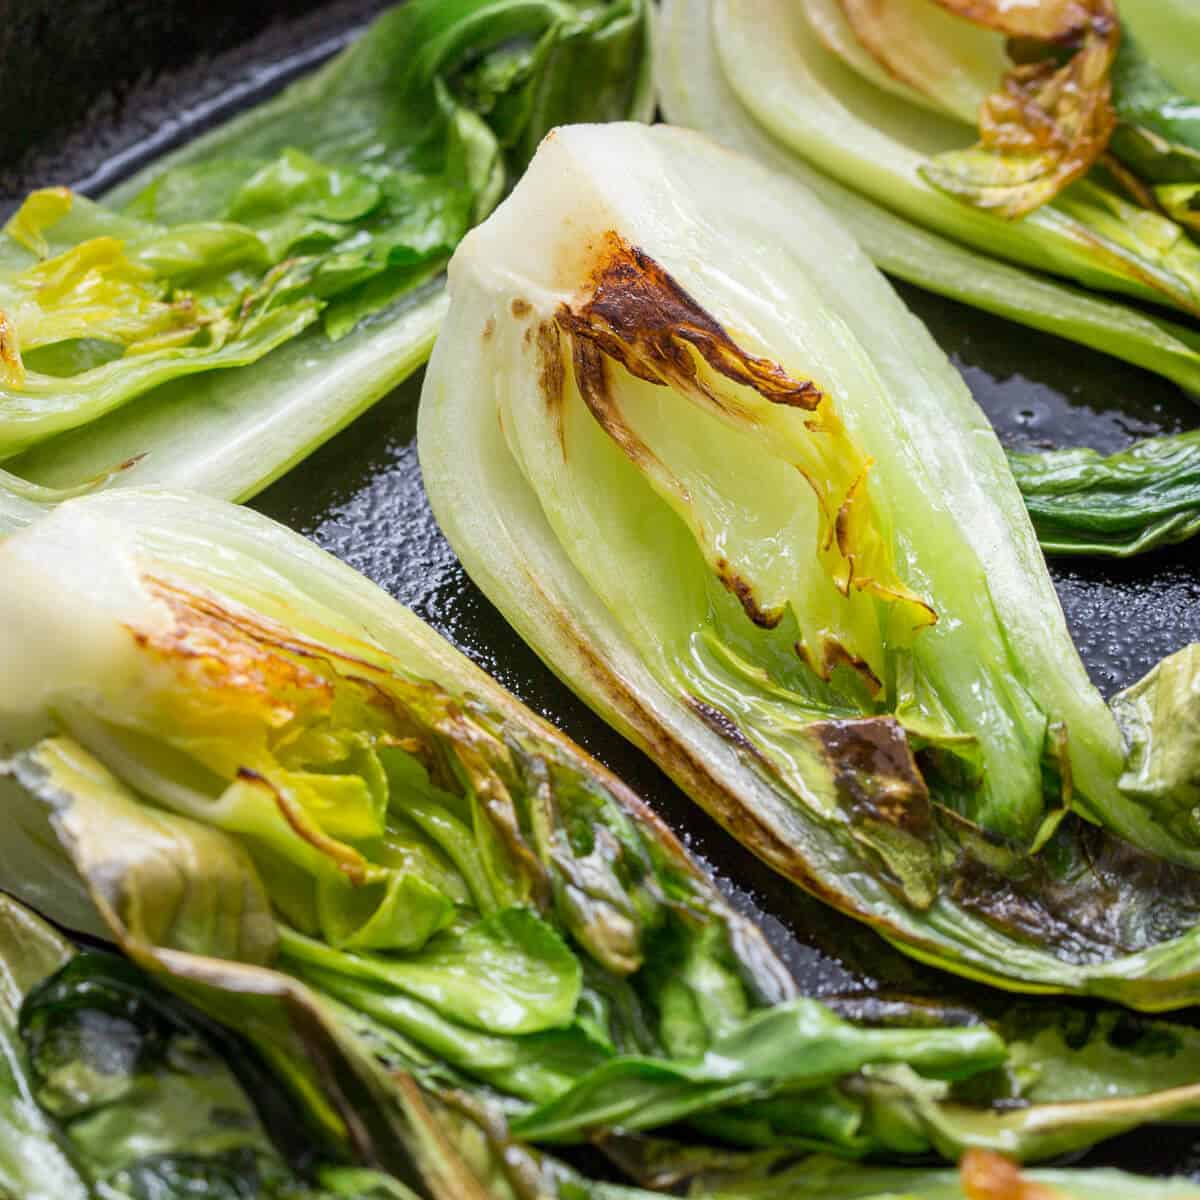 bok choi cooking in a black cast iron skillet.